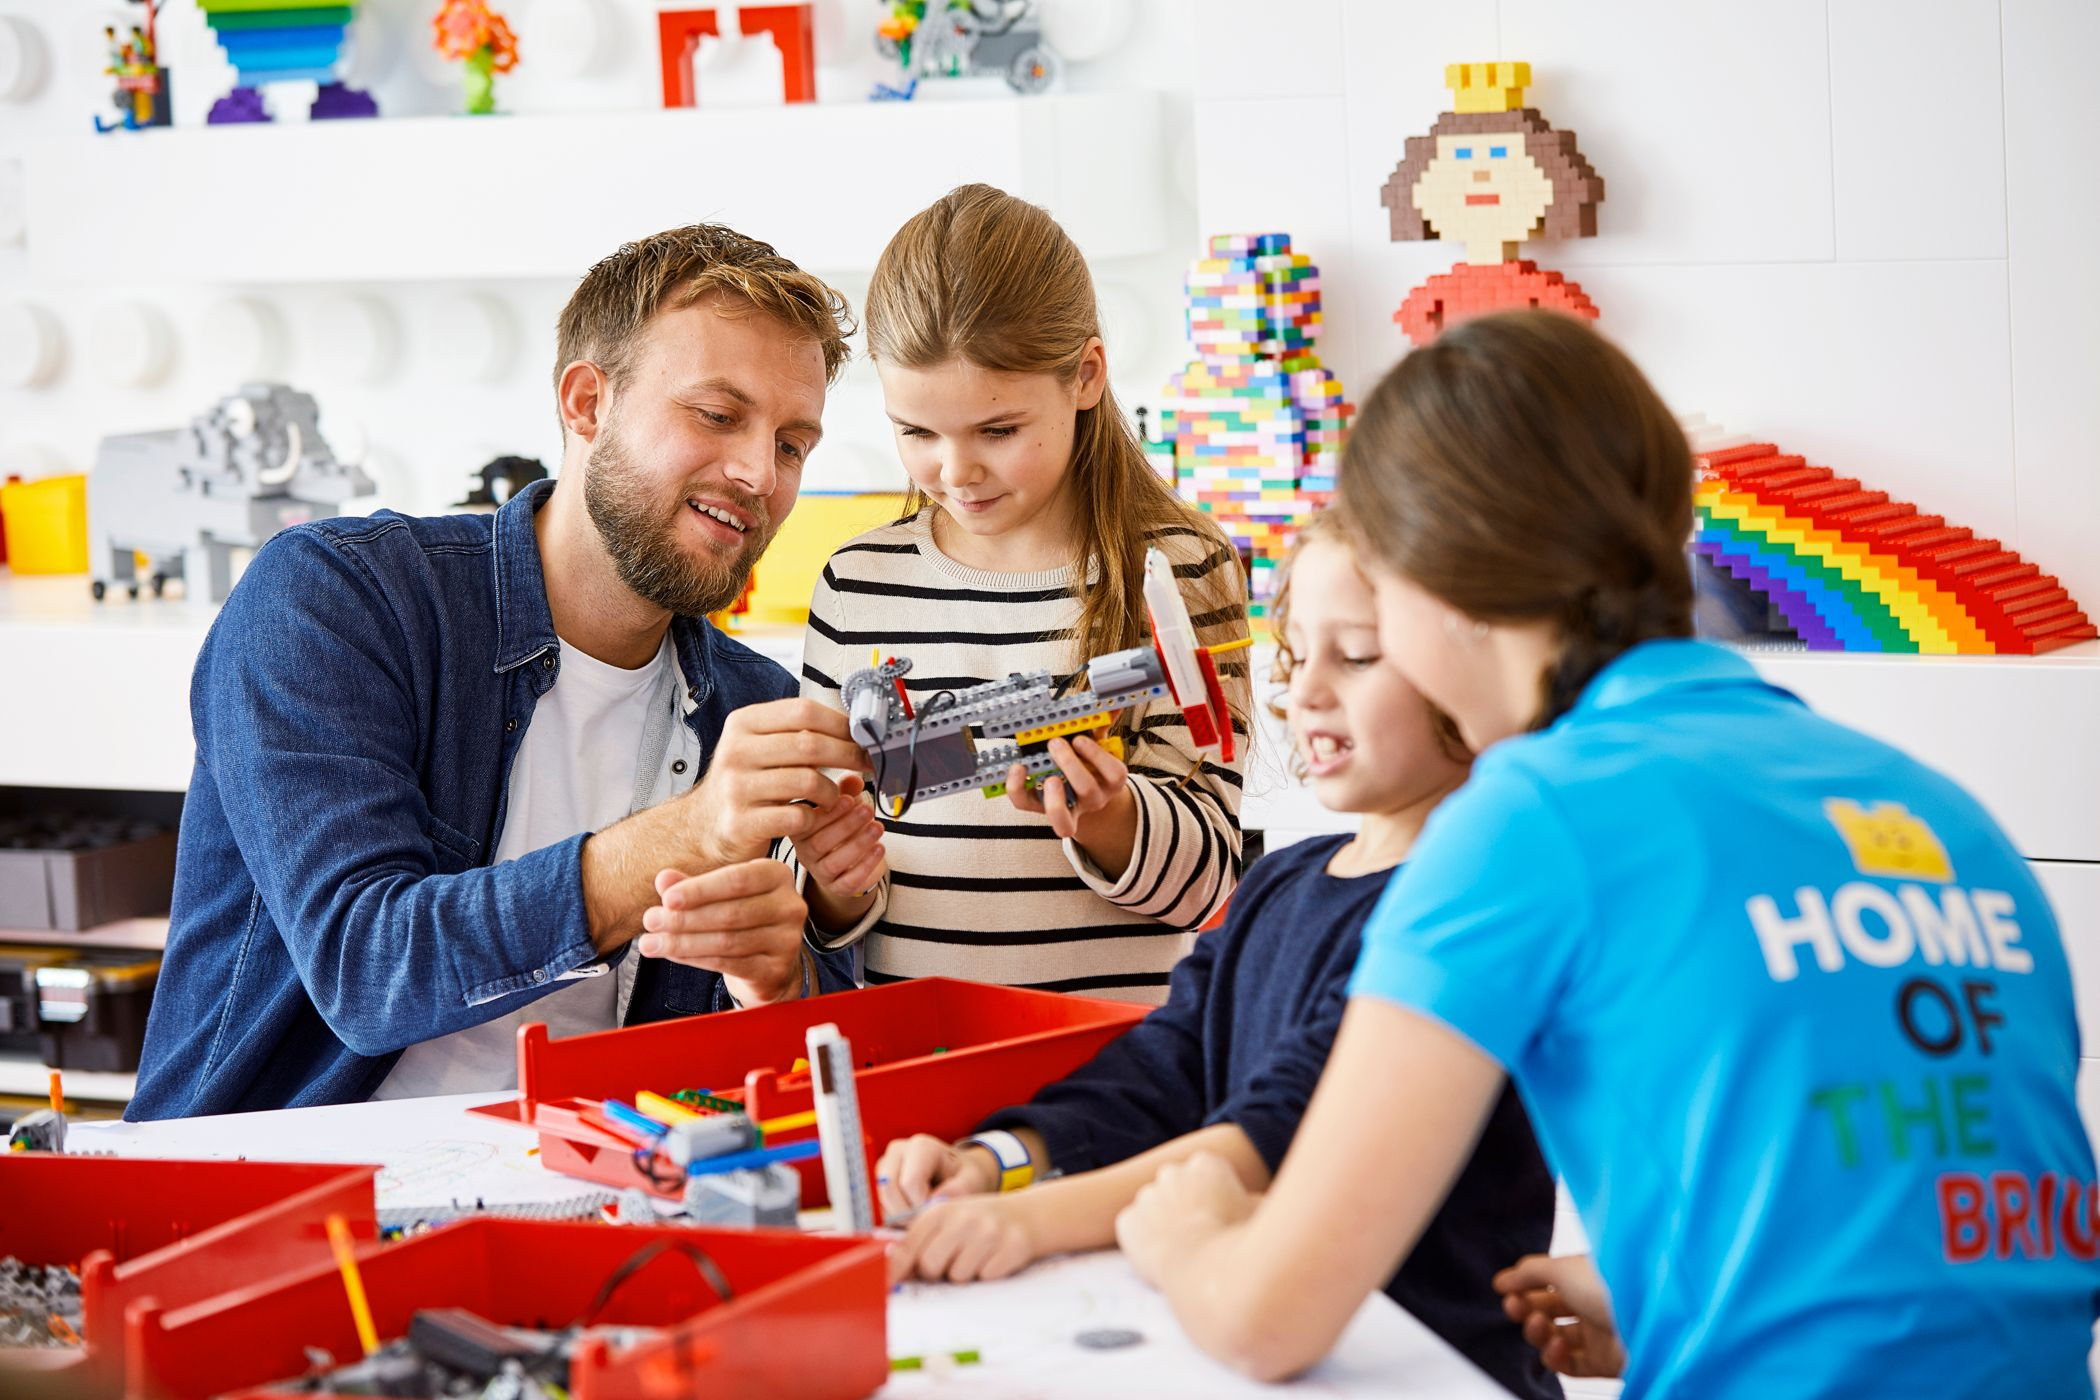 TOP 2_LEGO_HOUSE_2018_RED ZONE_CREATIVE_LAB_031.jpg